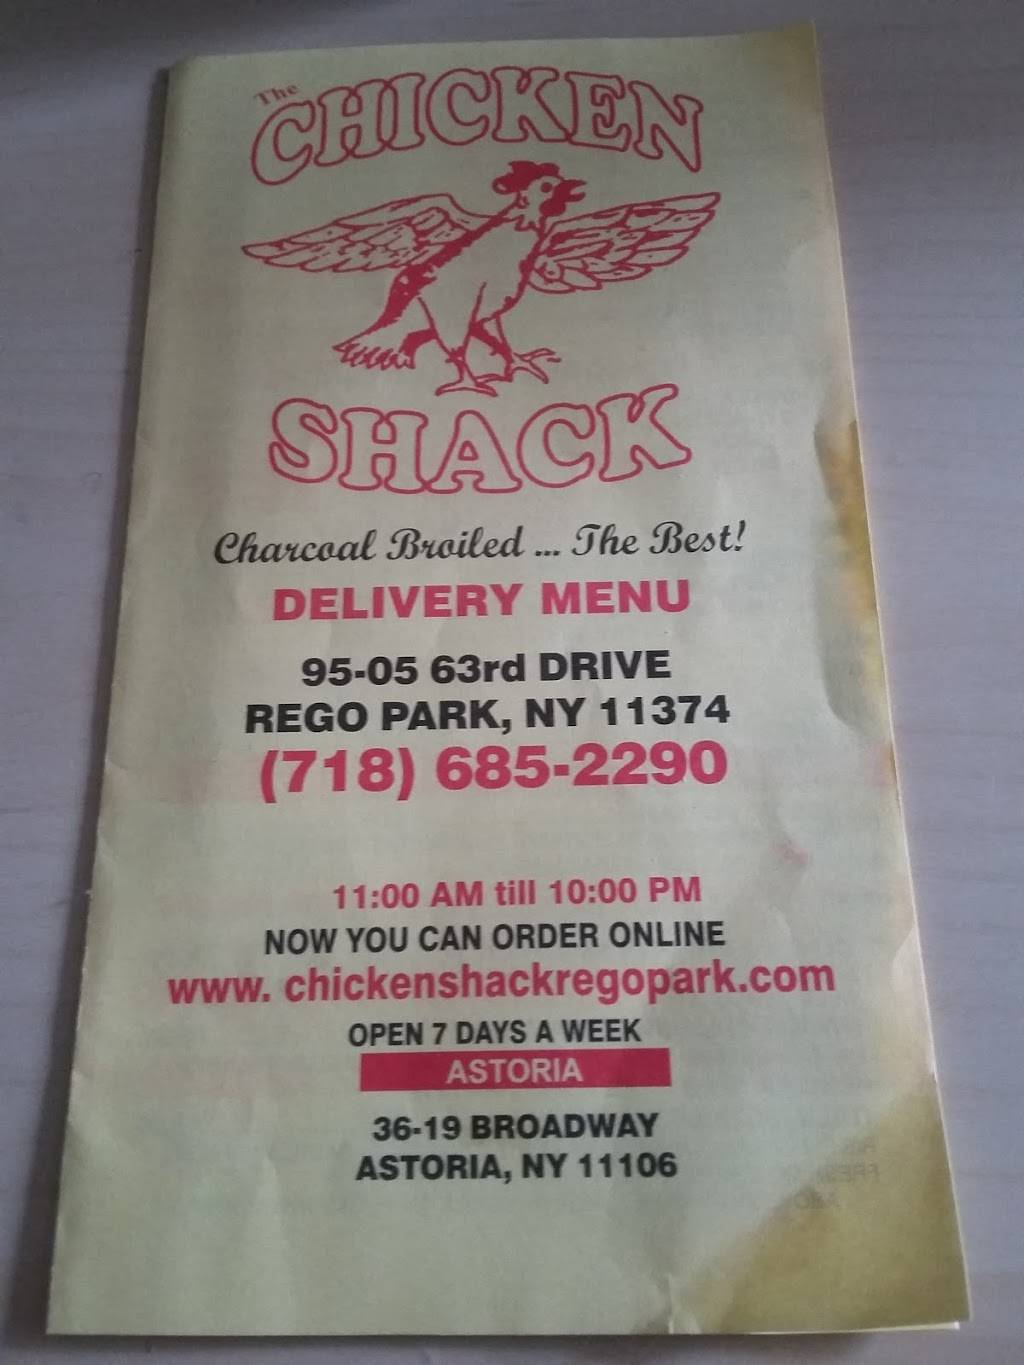 Chicken Shack Rego Park | restaurant | 95-05 63rd Dr, Rego Park, NY 11374, USA | 7186852290 OR +1 718-685-2290